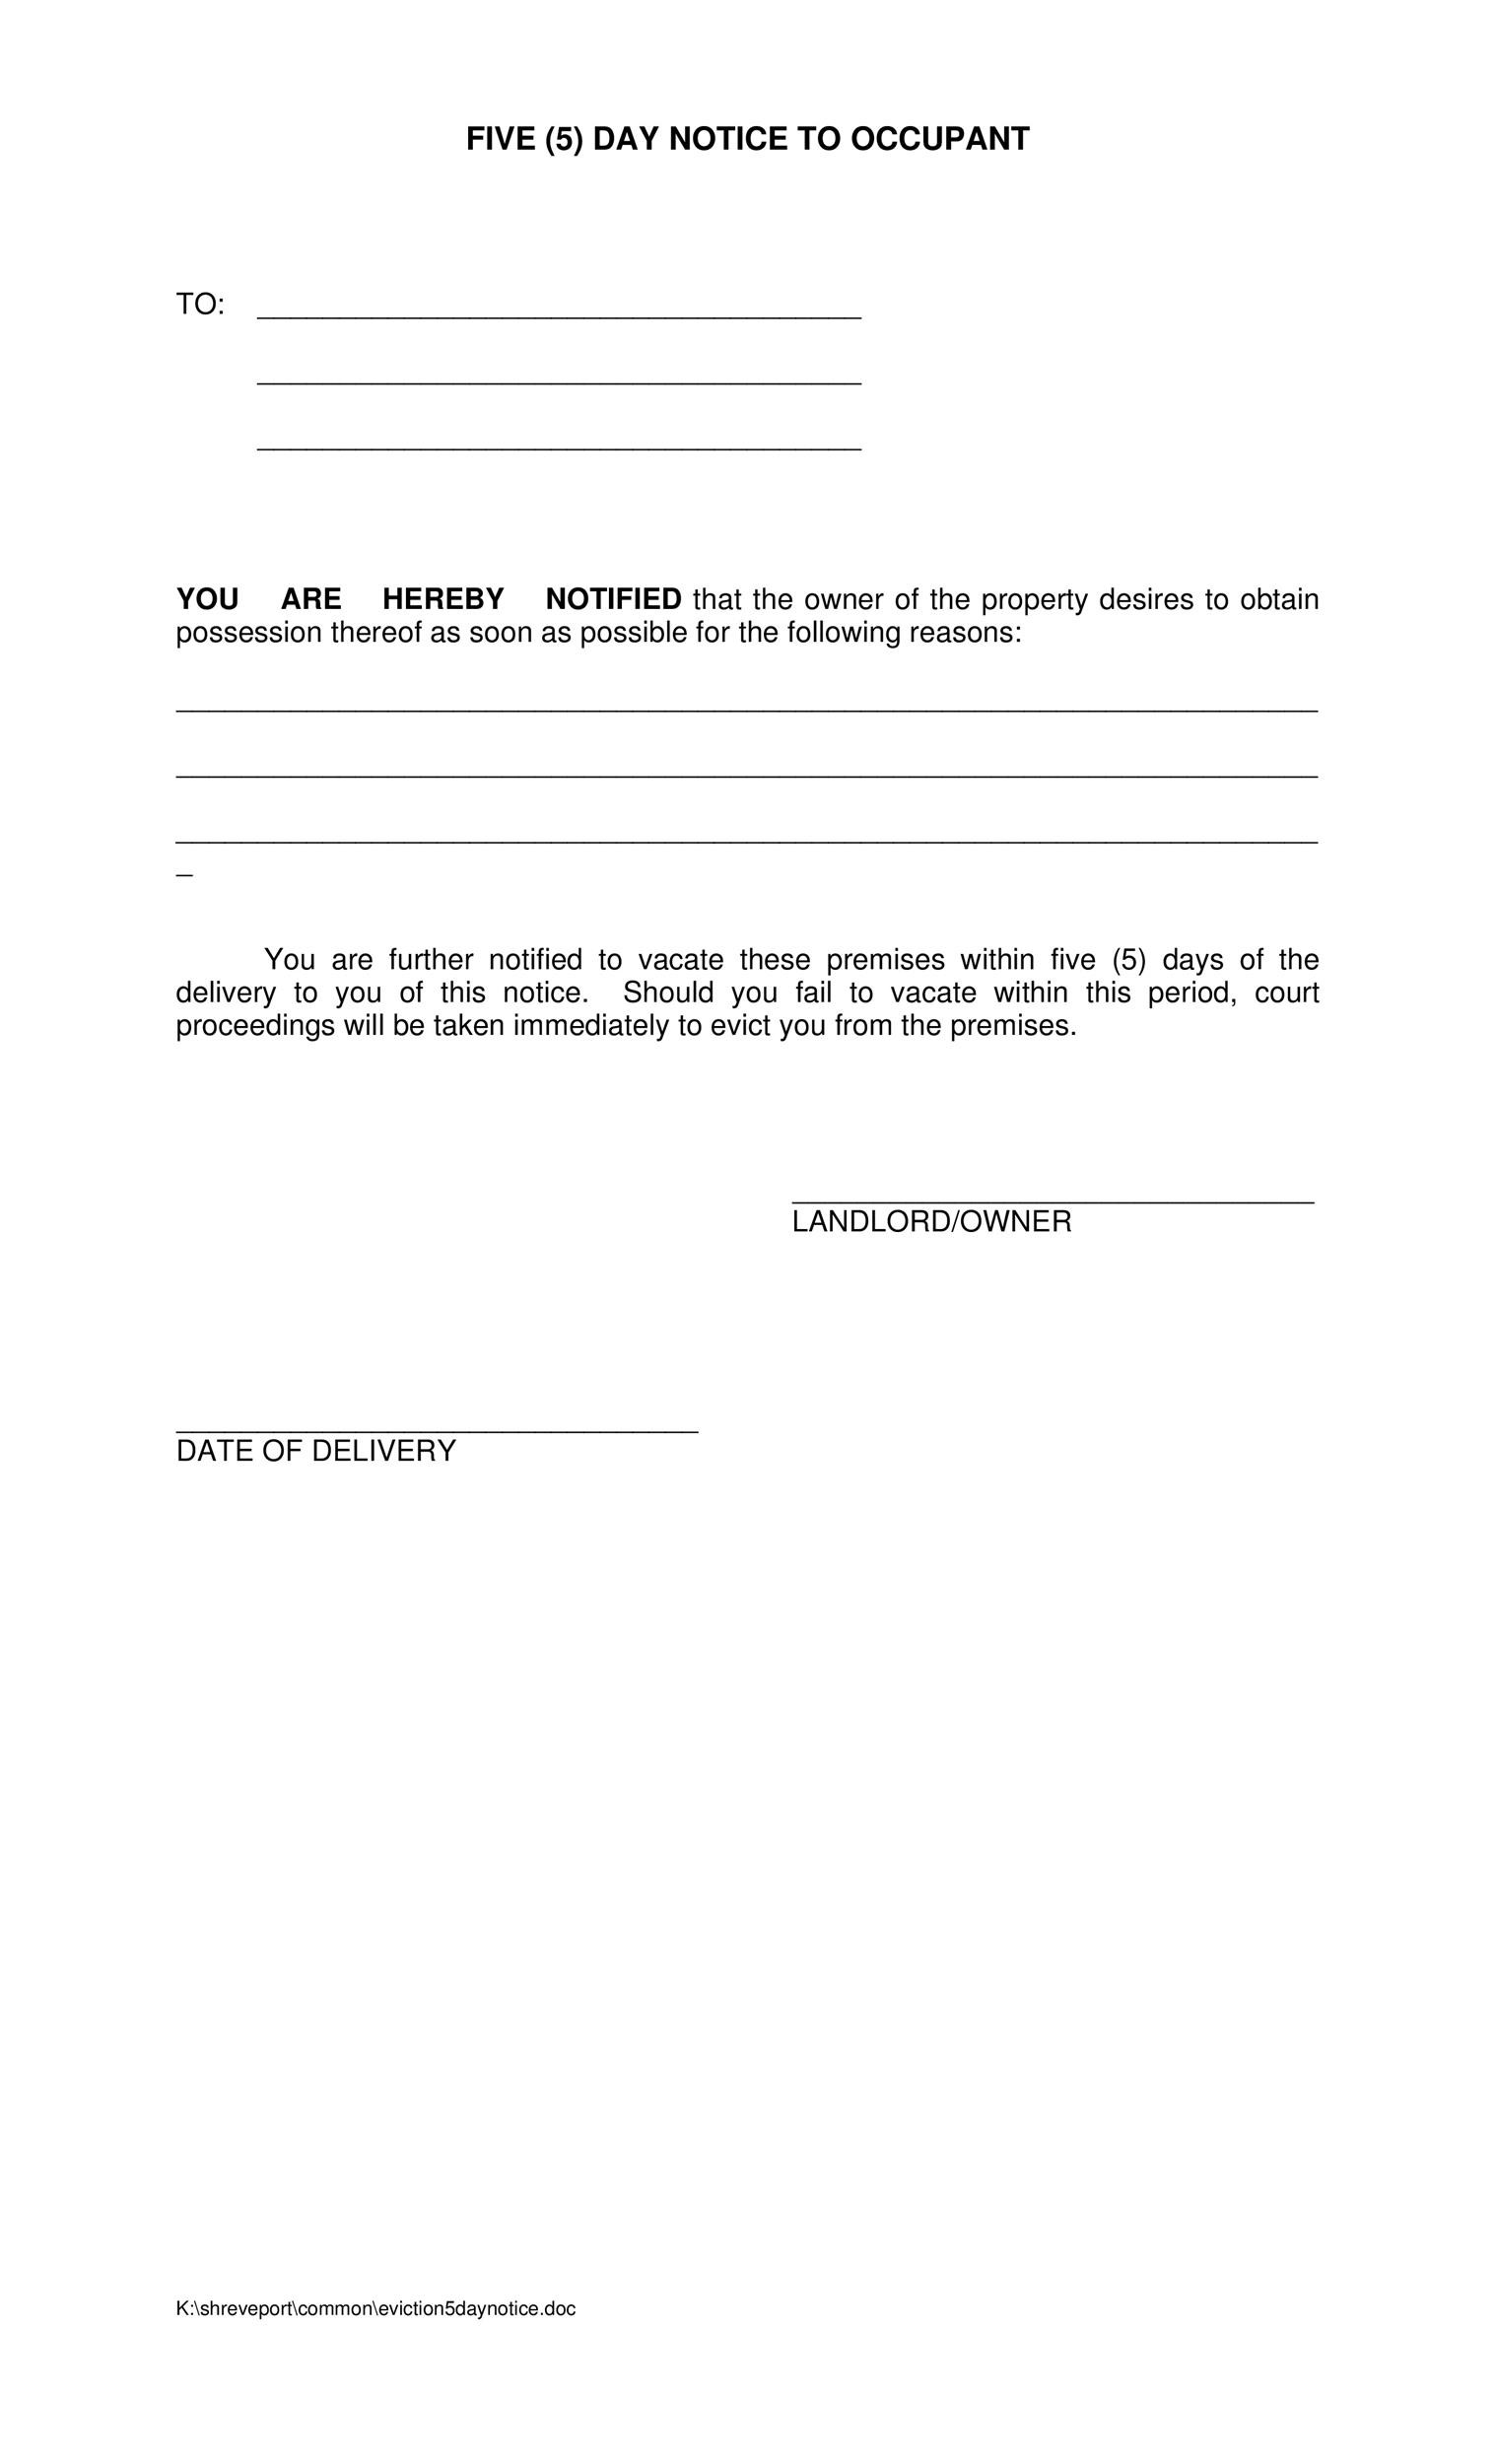 Free Five Day Notice To Occupant